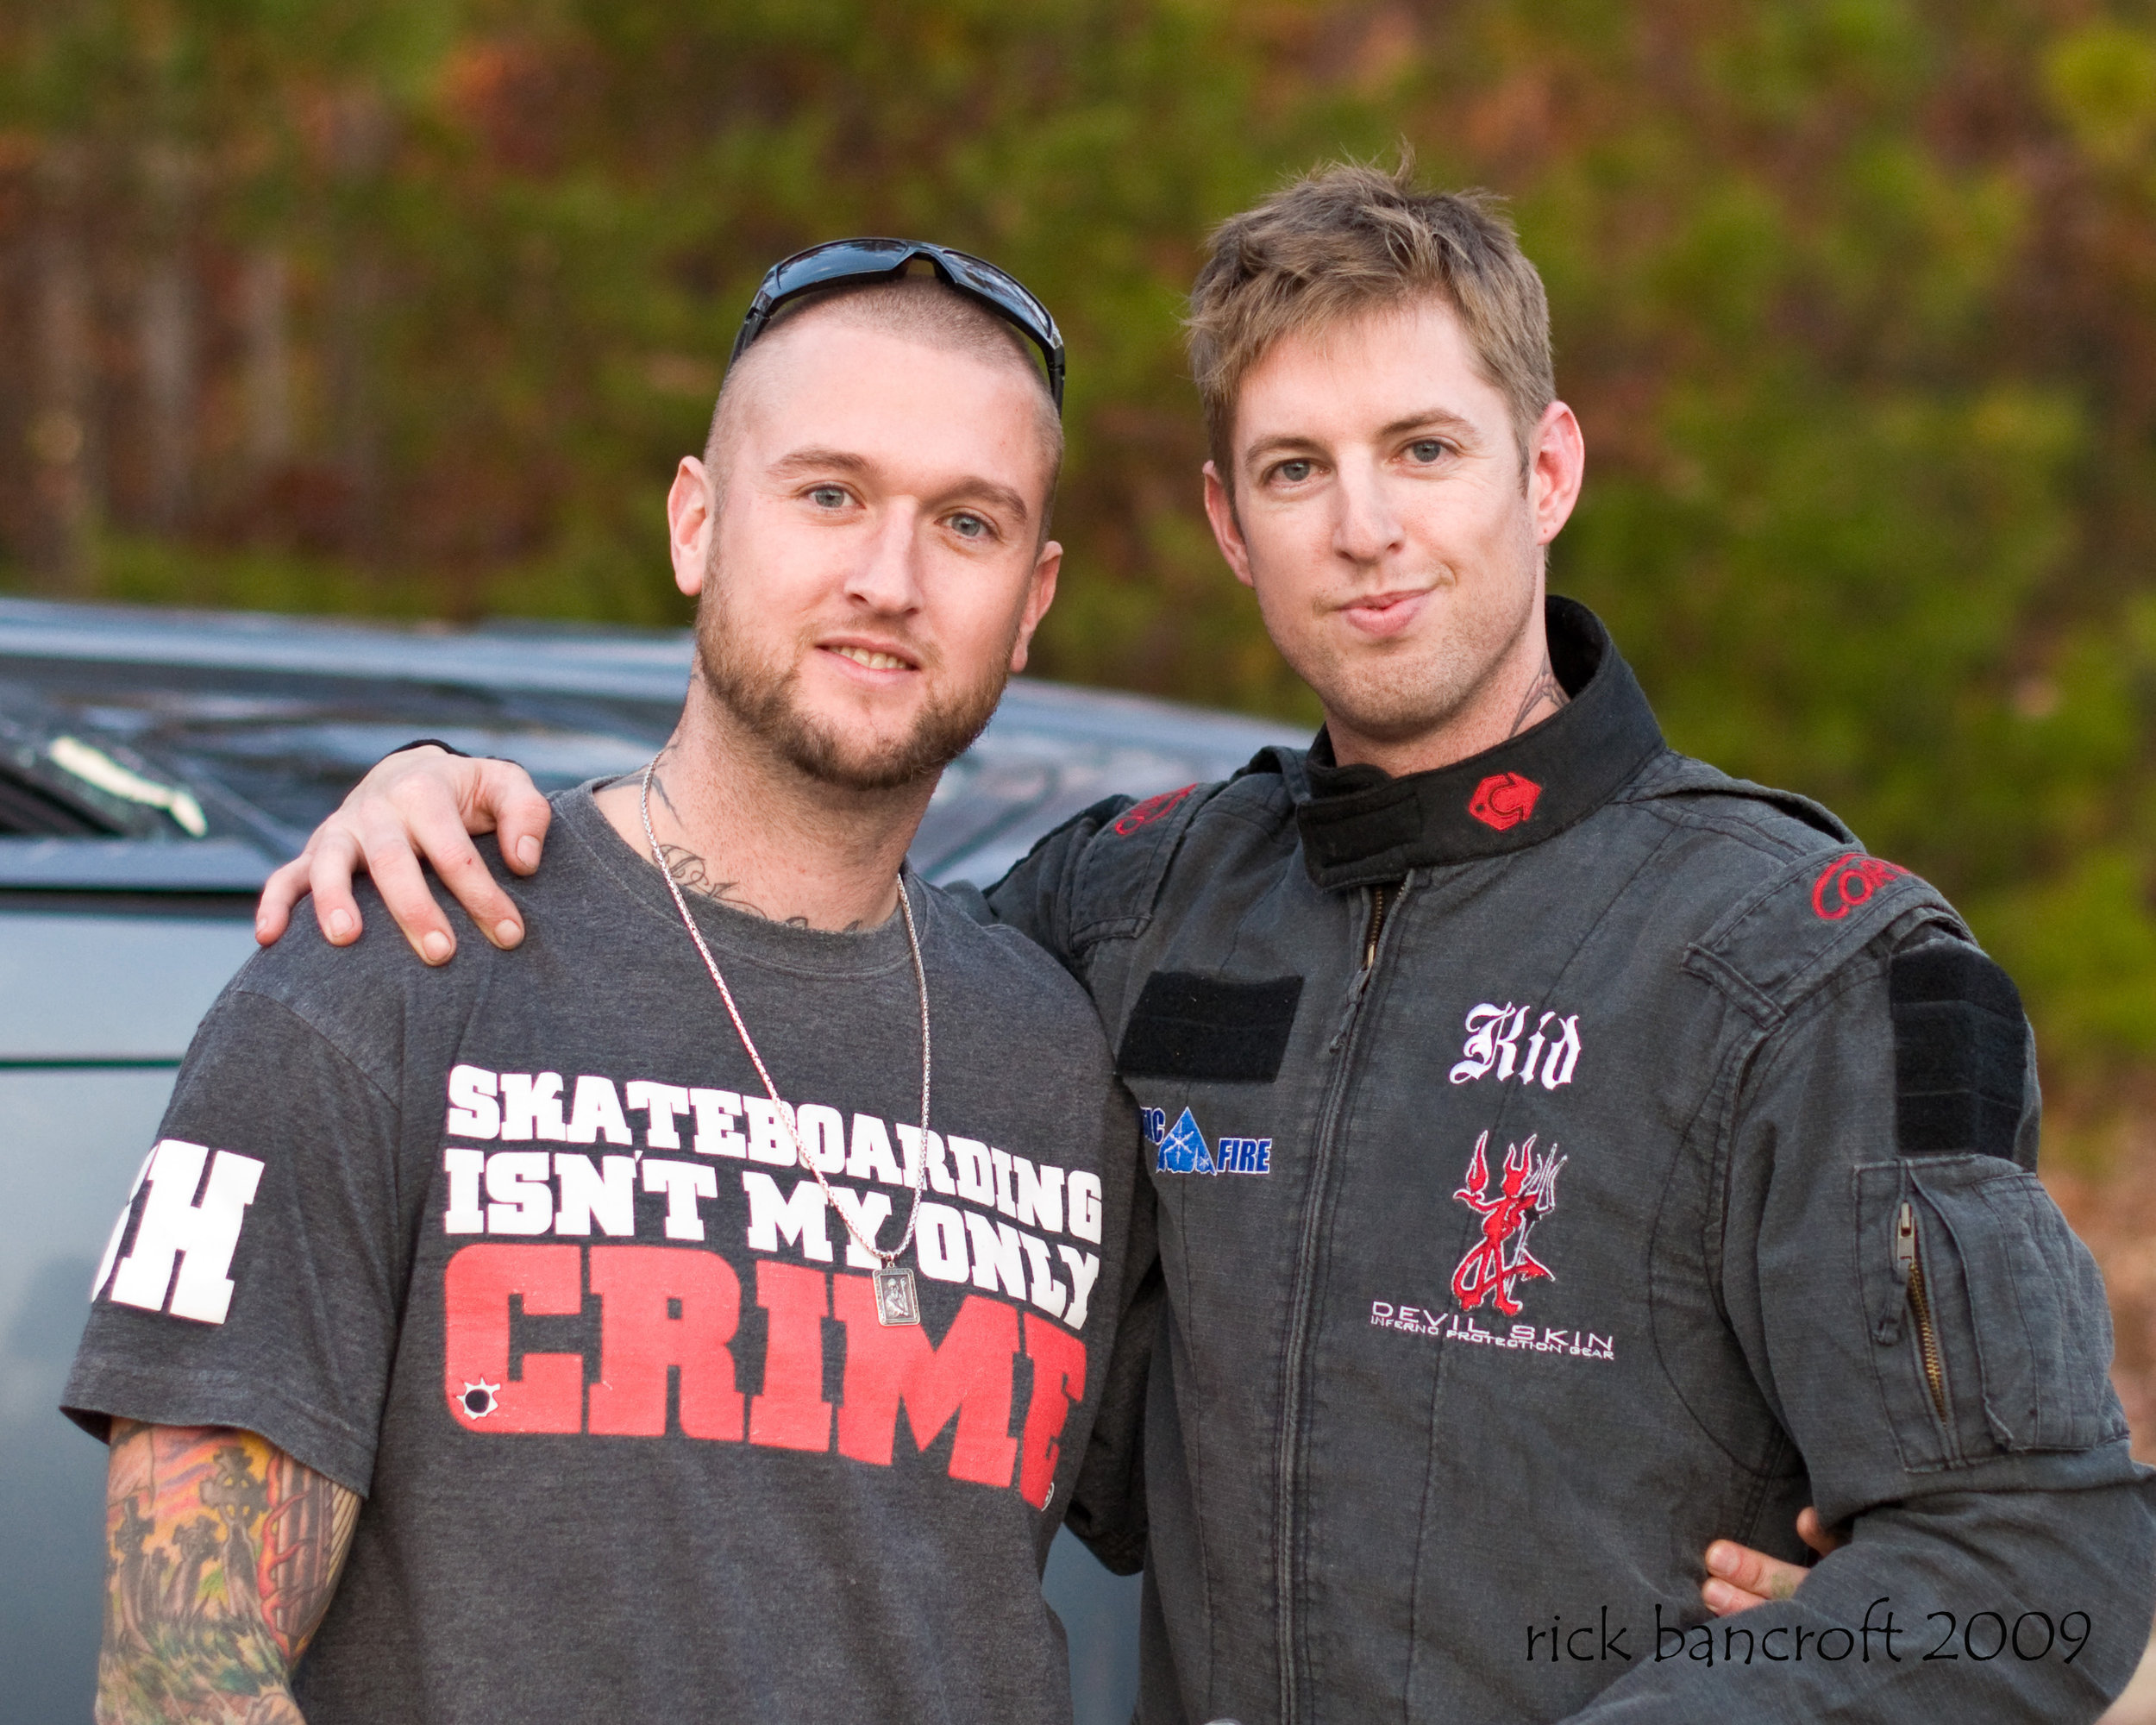 My brother Willie and I on set before a car roll over stunt. He keeps me safe. No one will ever have my back more than this guy.       photo credit - Rick Bancroft